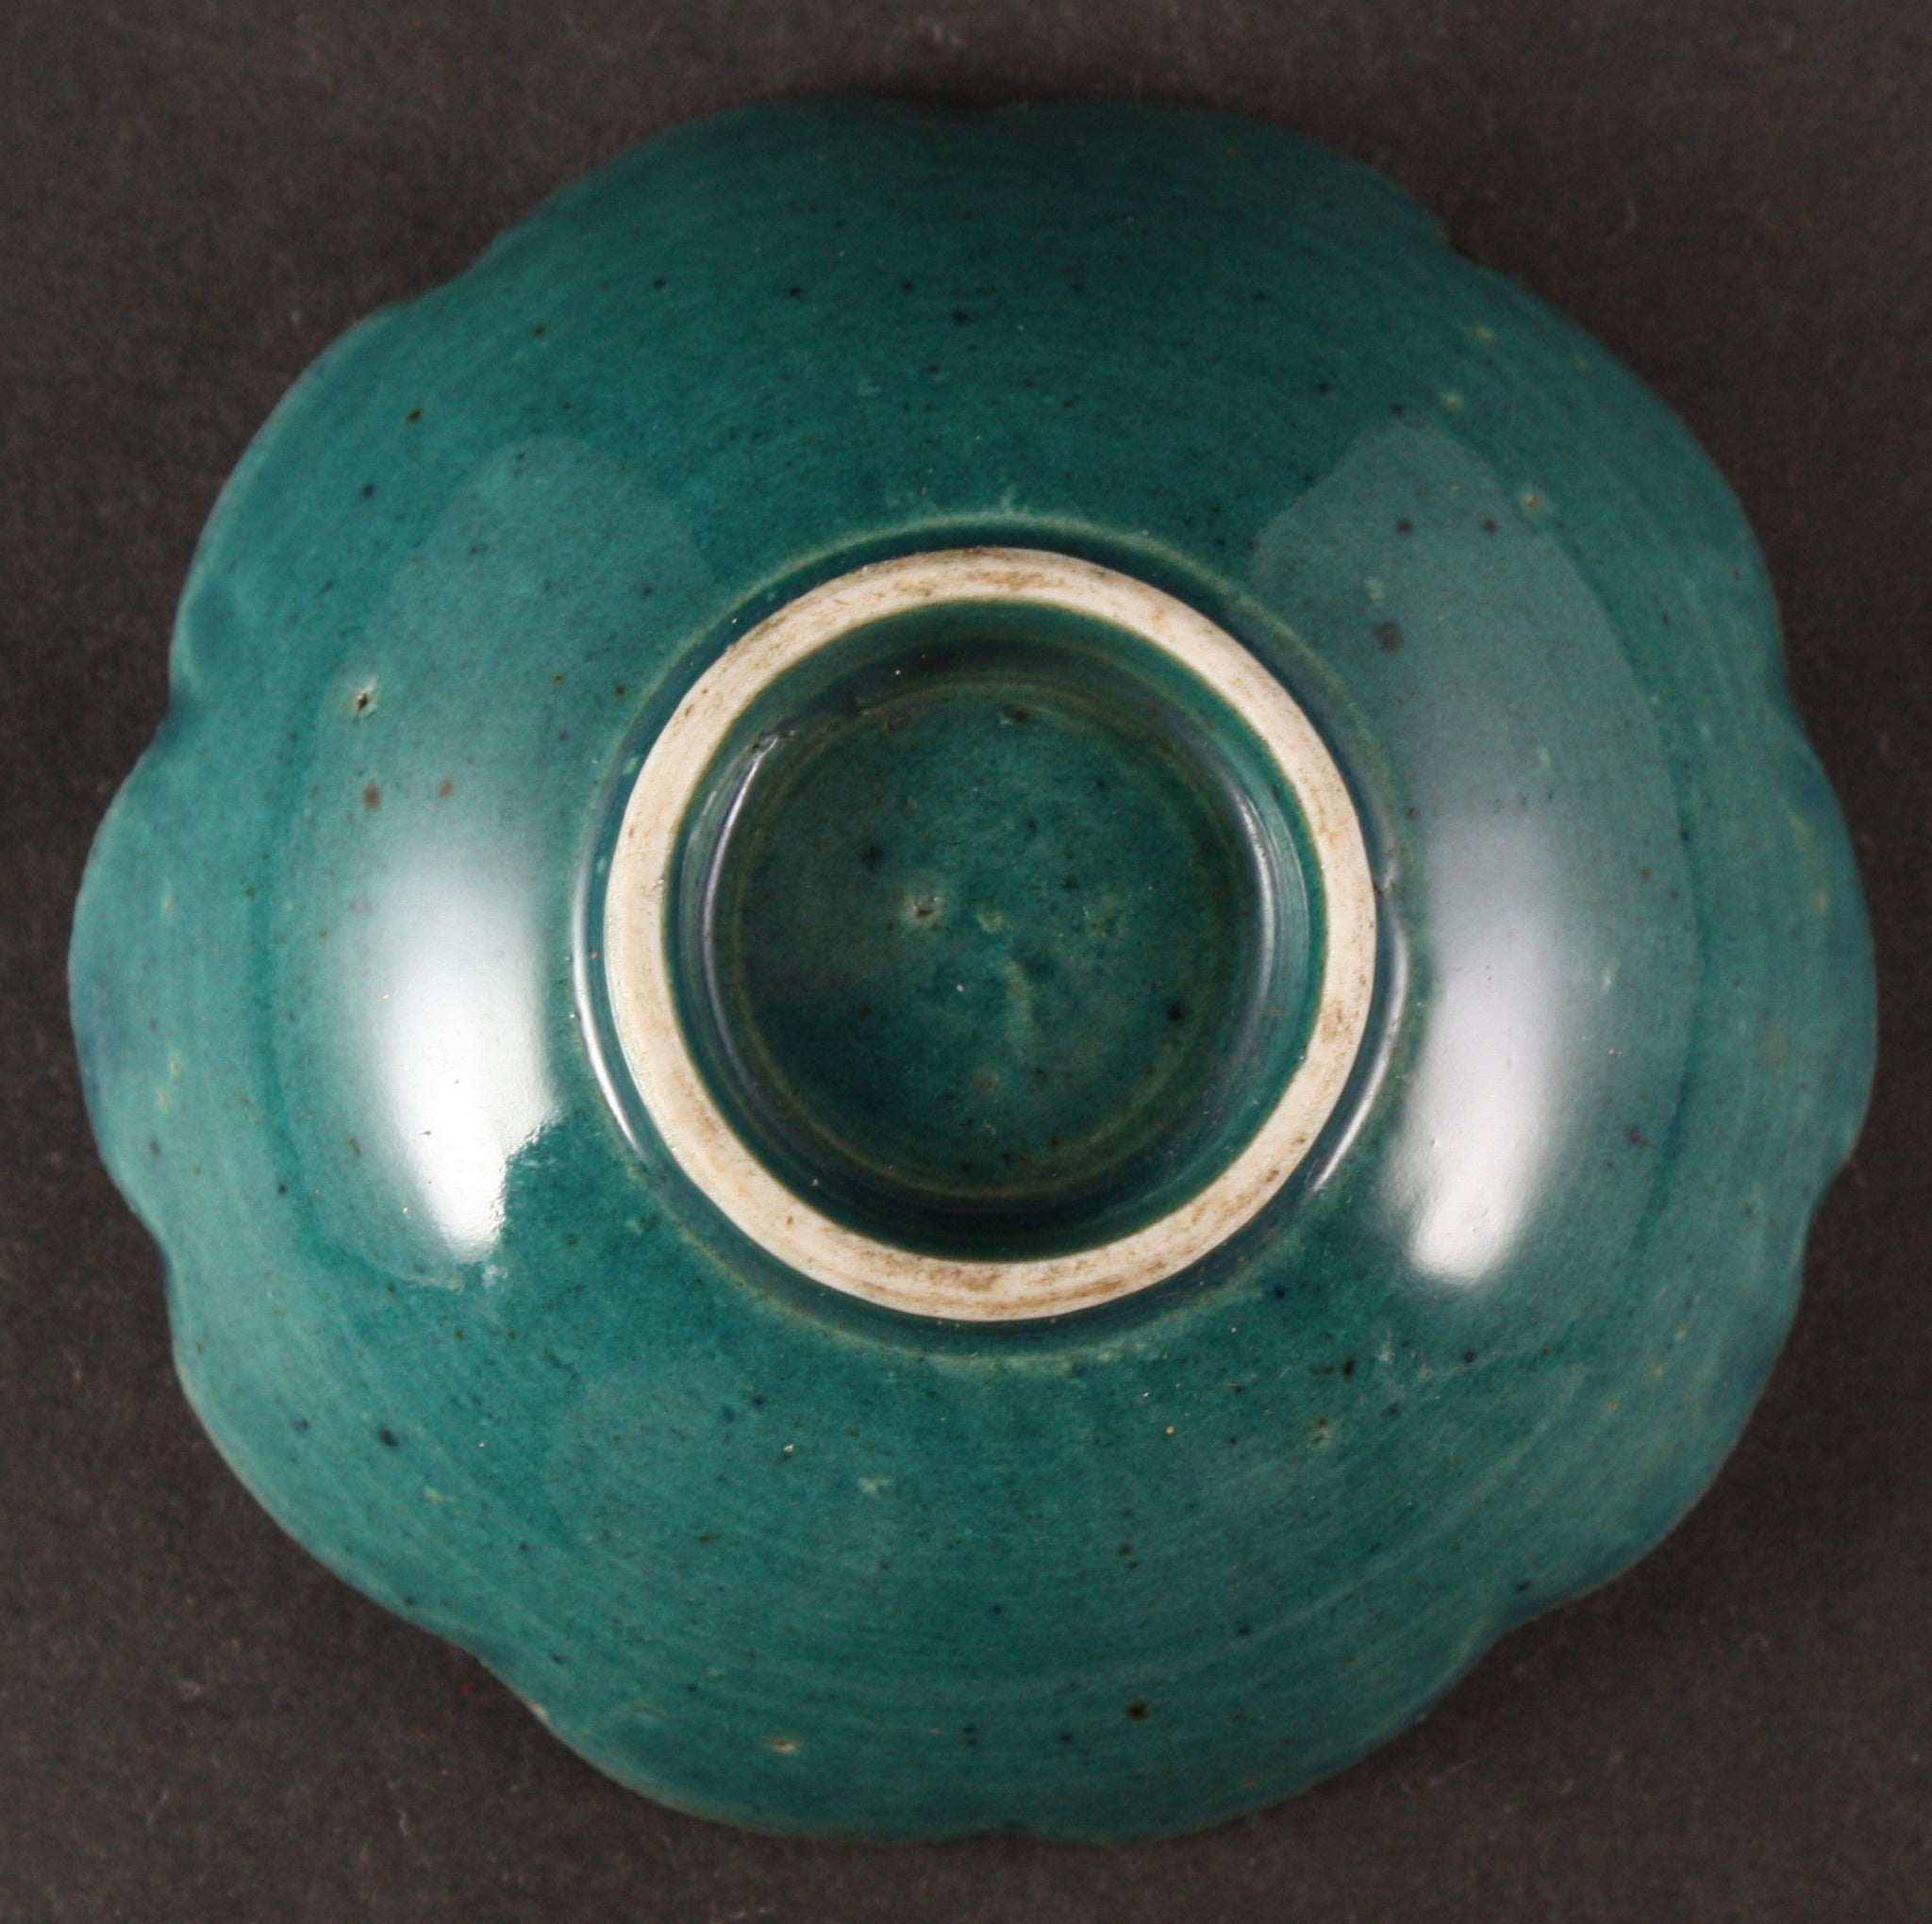 Russo Japanese War Rising Sun Badge Green Glaze Army Sake Cup